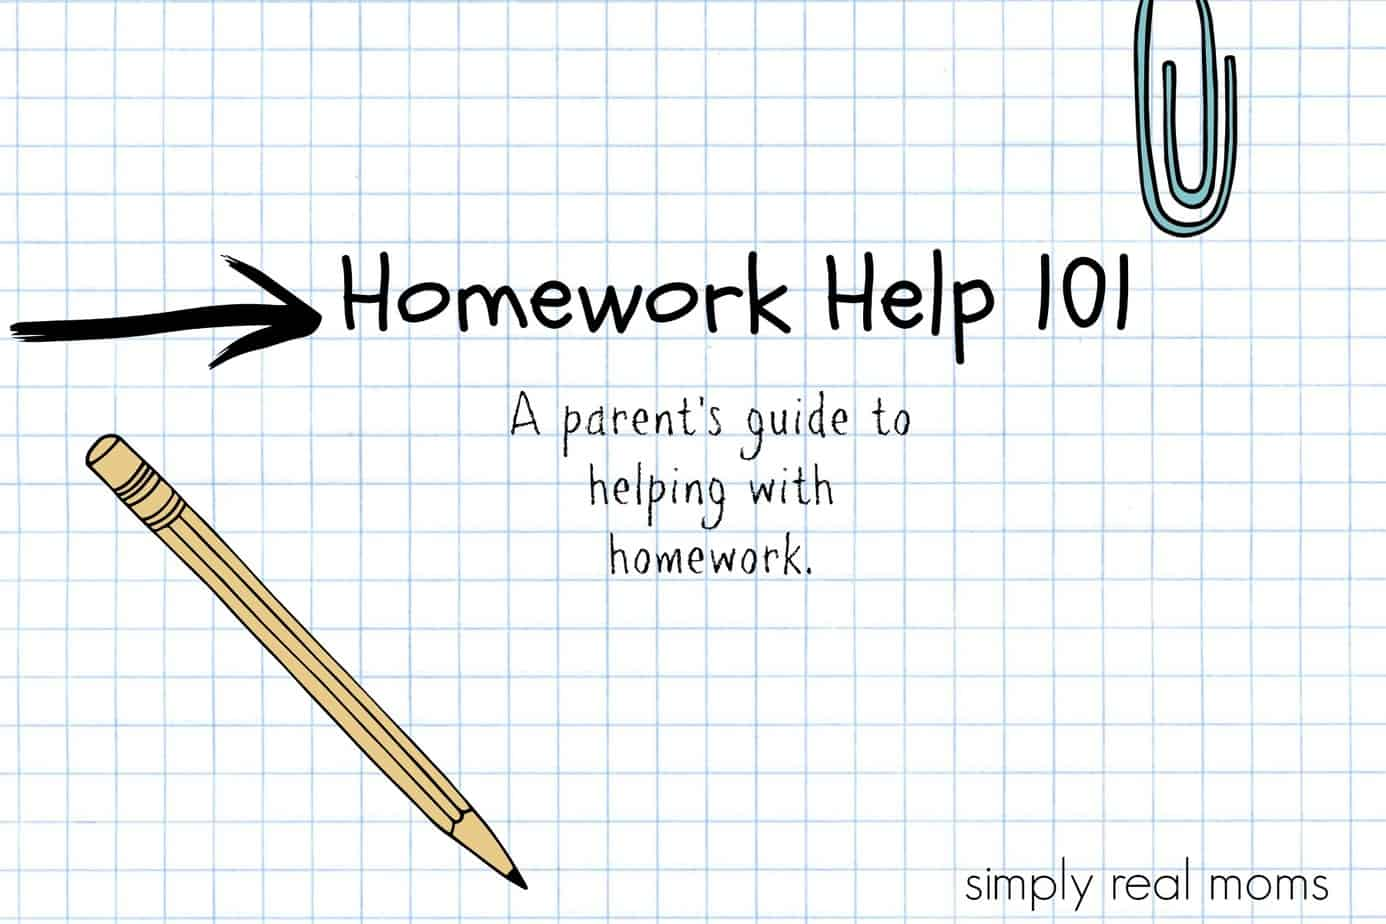 Homework Help 101: A parent's guide to helping with homework